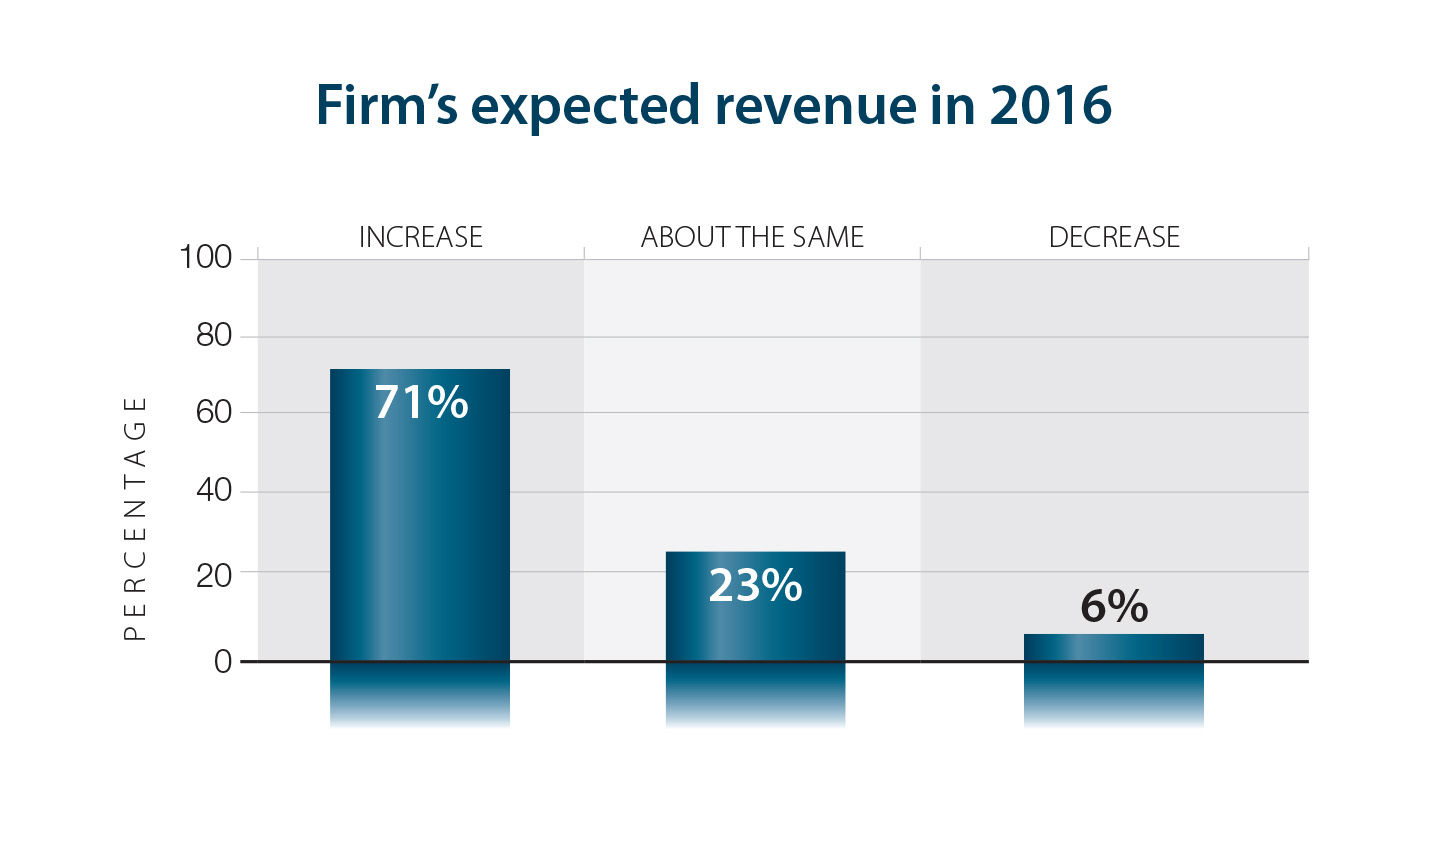 71% of CEOs expect increased revenue in 2016